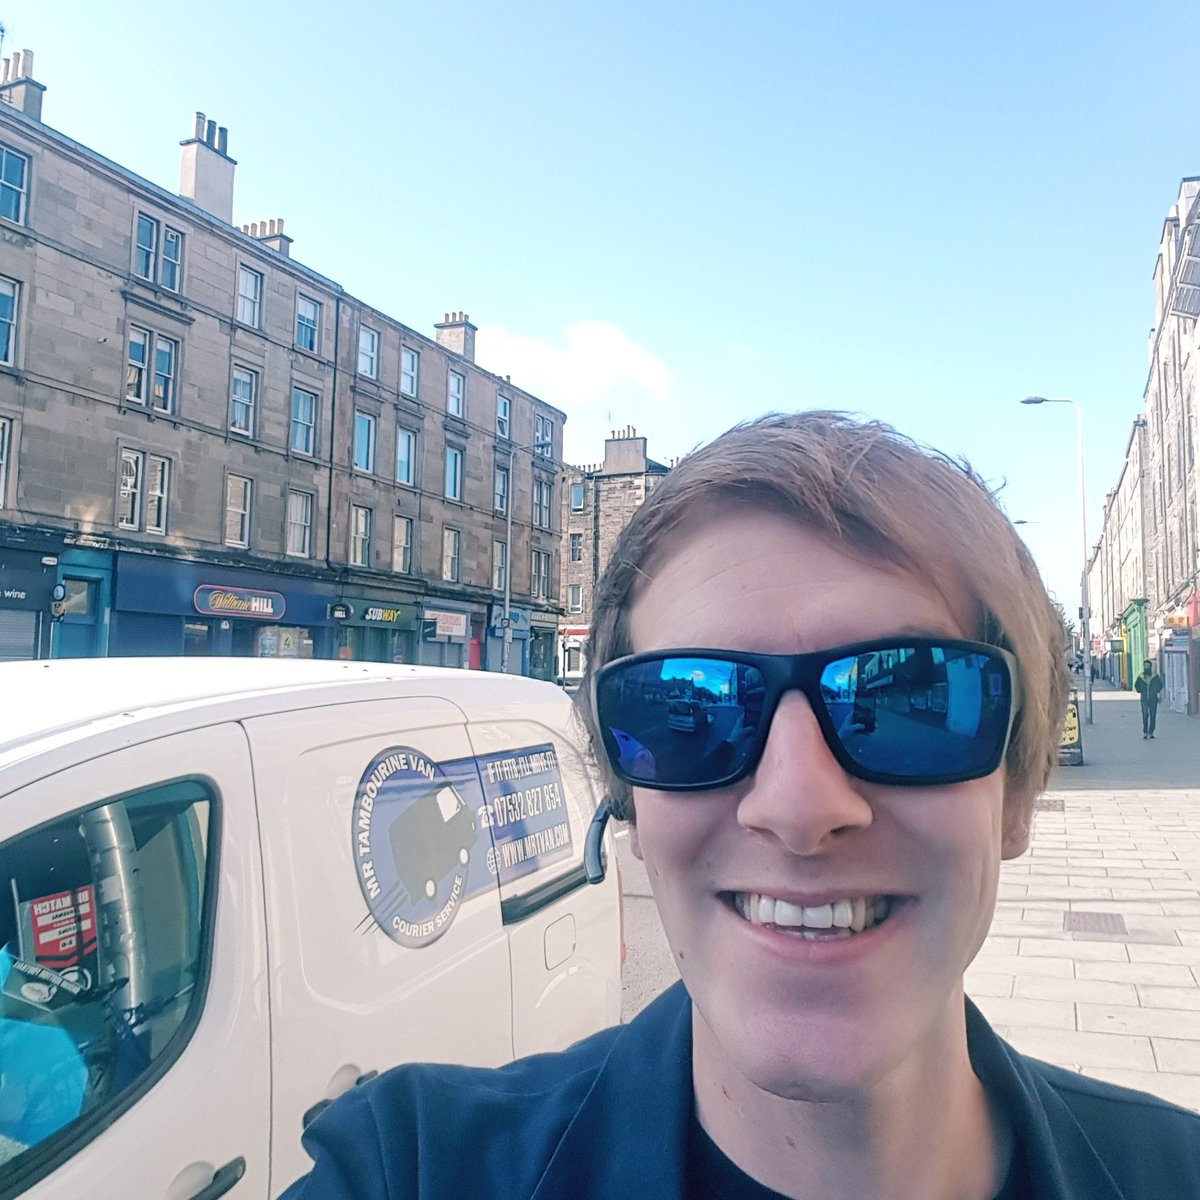 Starting my day with Sunshine on Leith! #Edinburgh #courier #deliver <br>http://pic.twitter.com/78q0KHNBa2 &ndash; bij Leith Walk